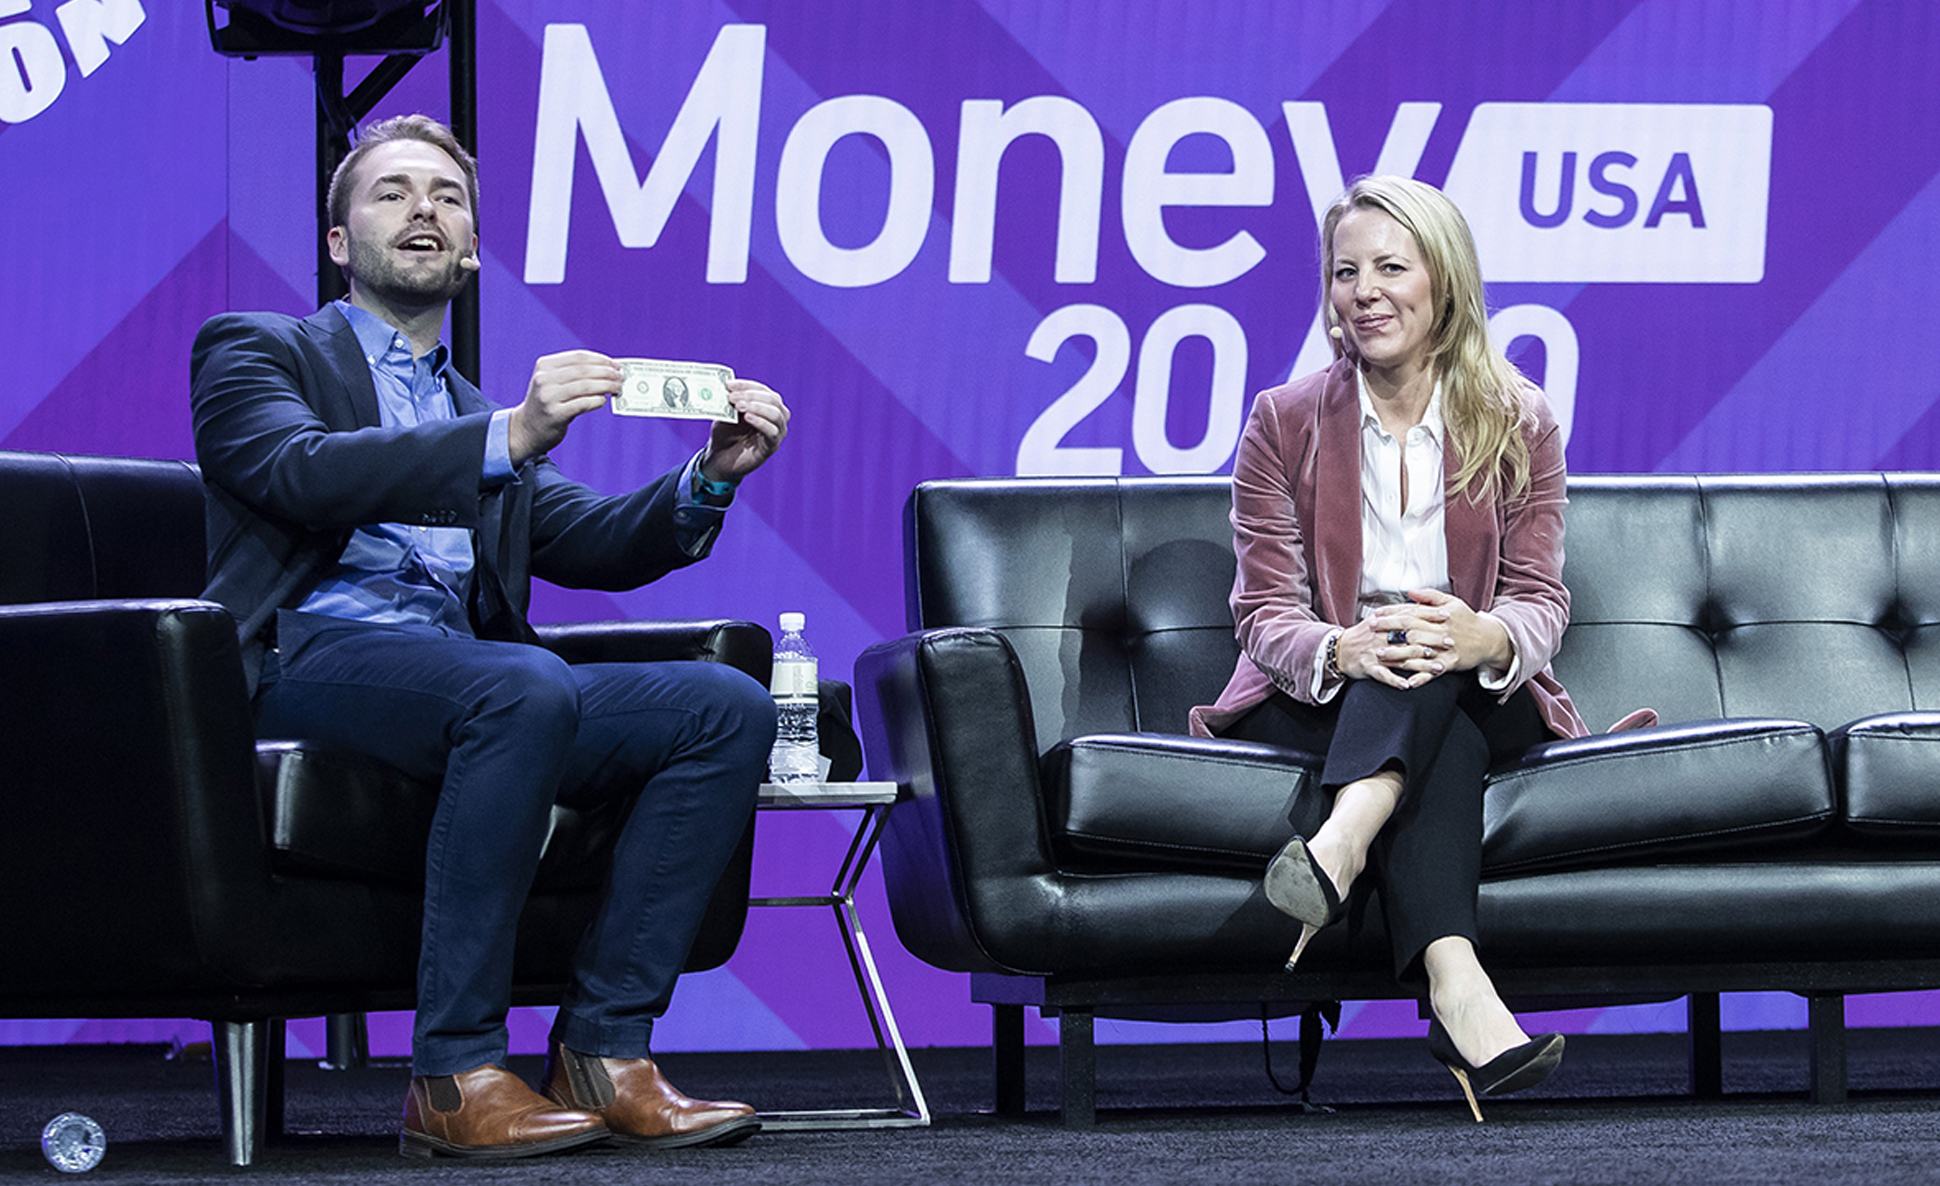 A keynote on crytocurrency from Money 20/20